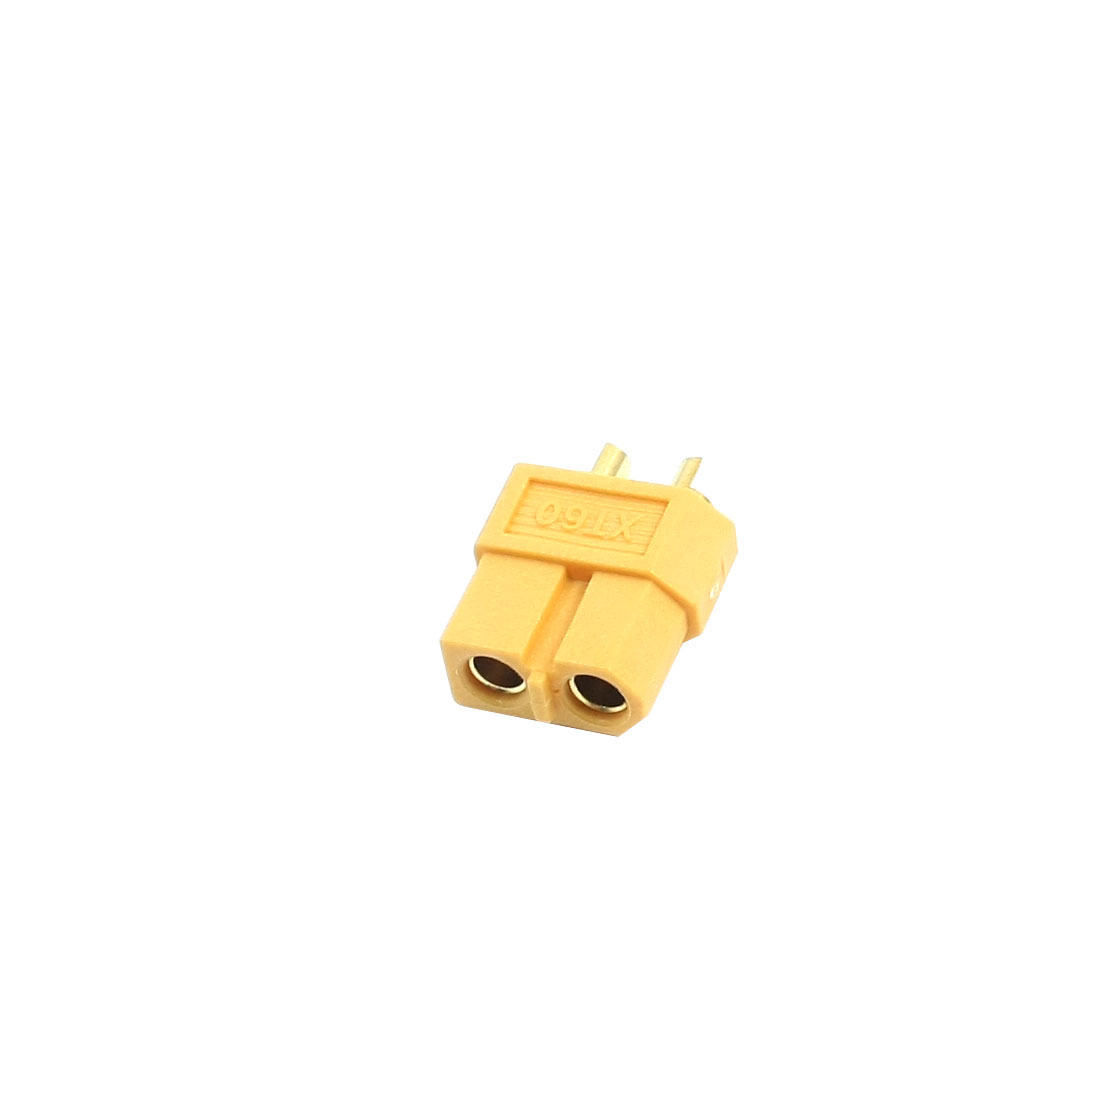 XT60 3.5mm Female Type T Connector Adapter for DIY RC Model Li-Po Battery ESC Charger